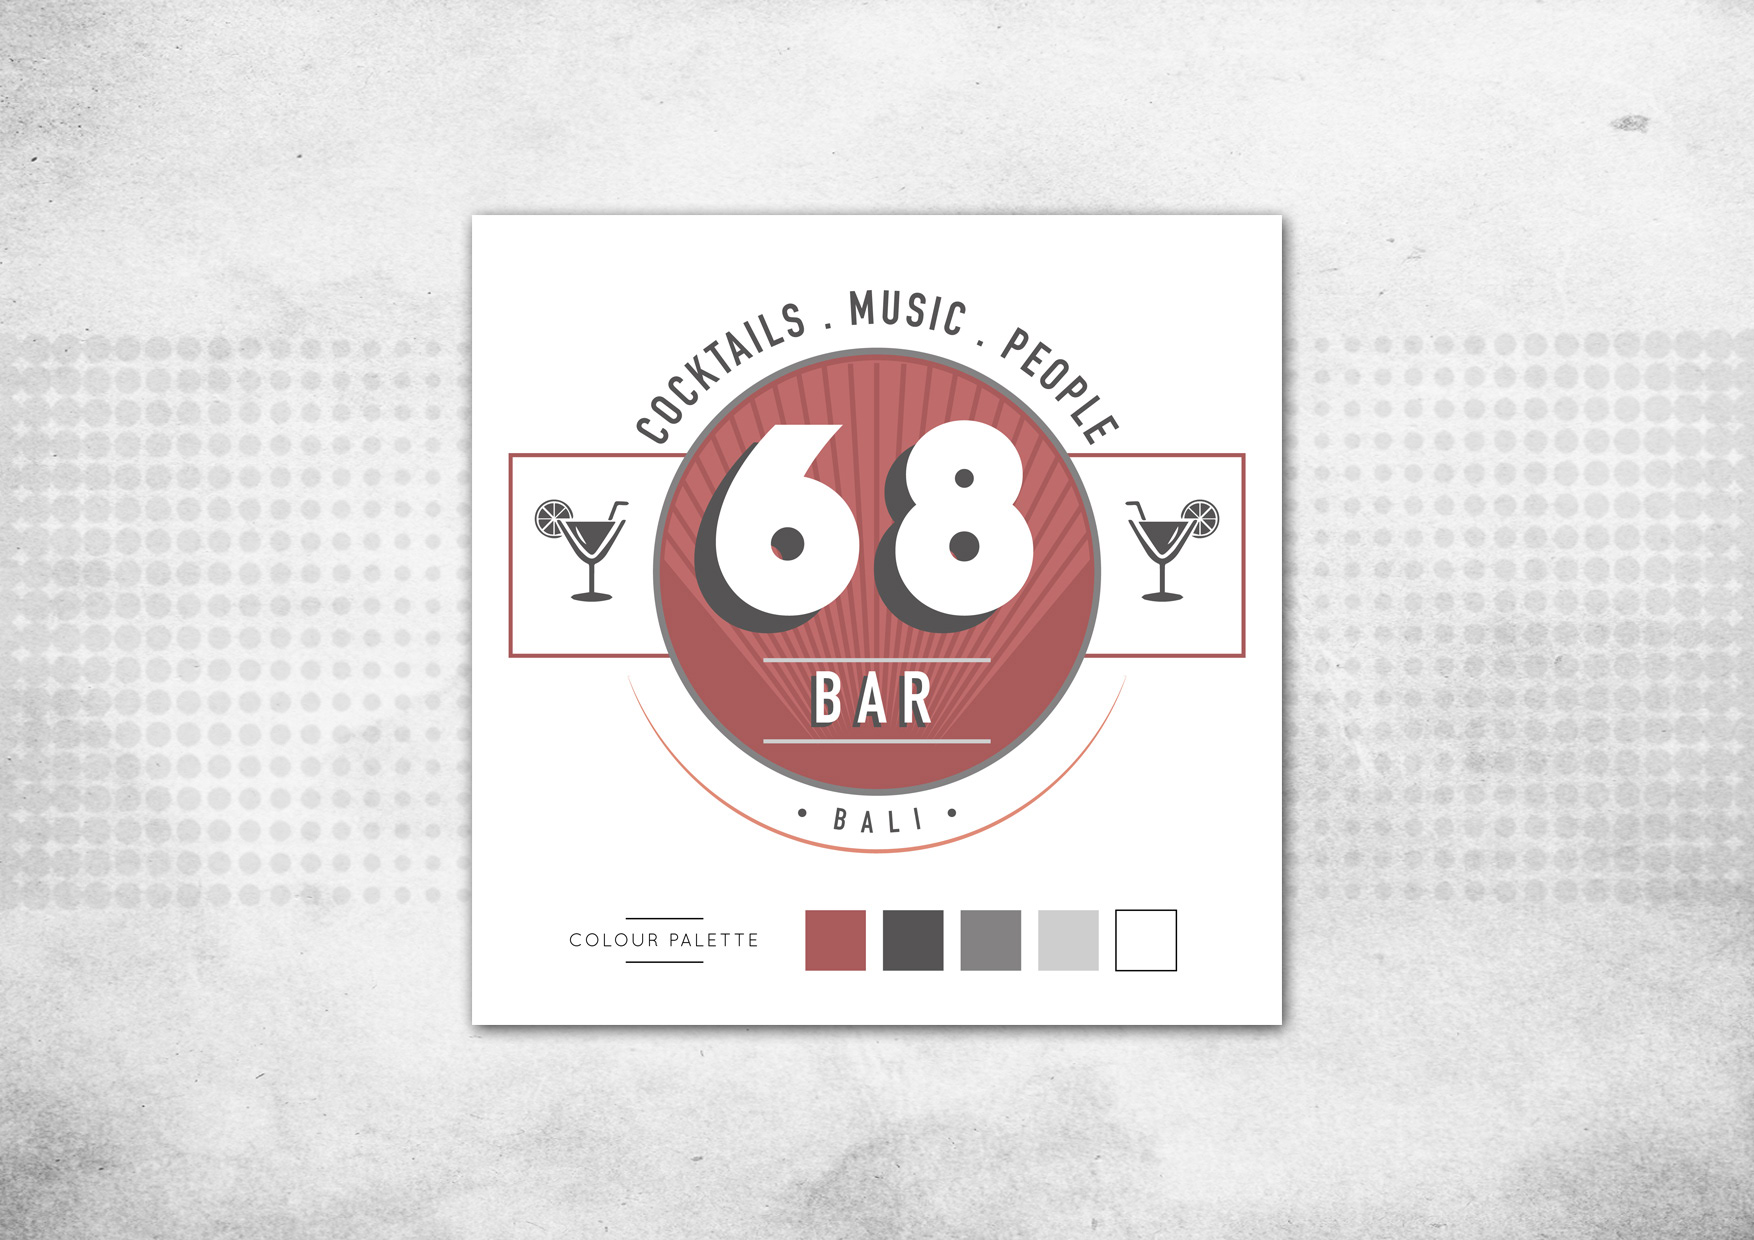 Famoso BAR 68 - Logo Design on Behance LO49